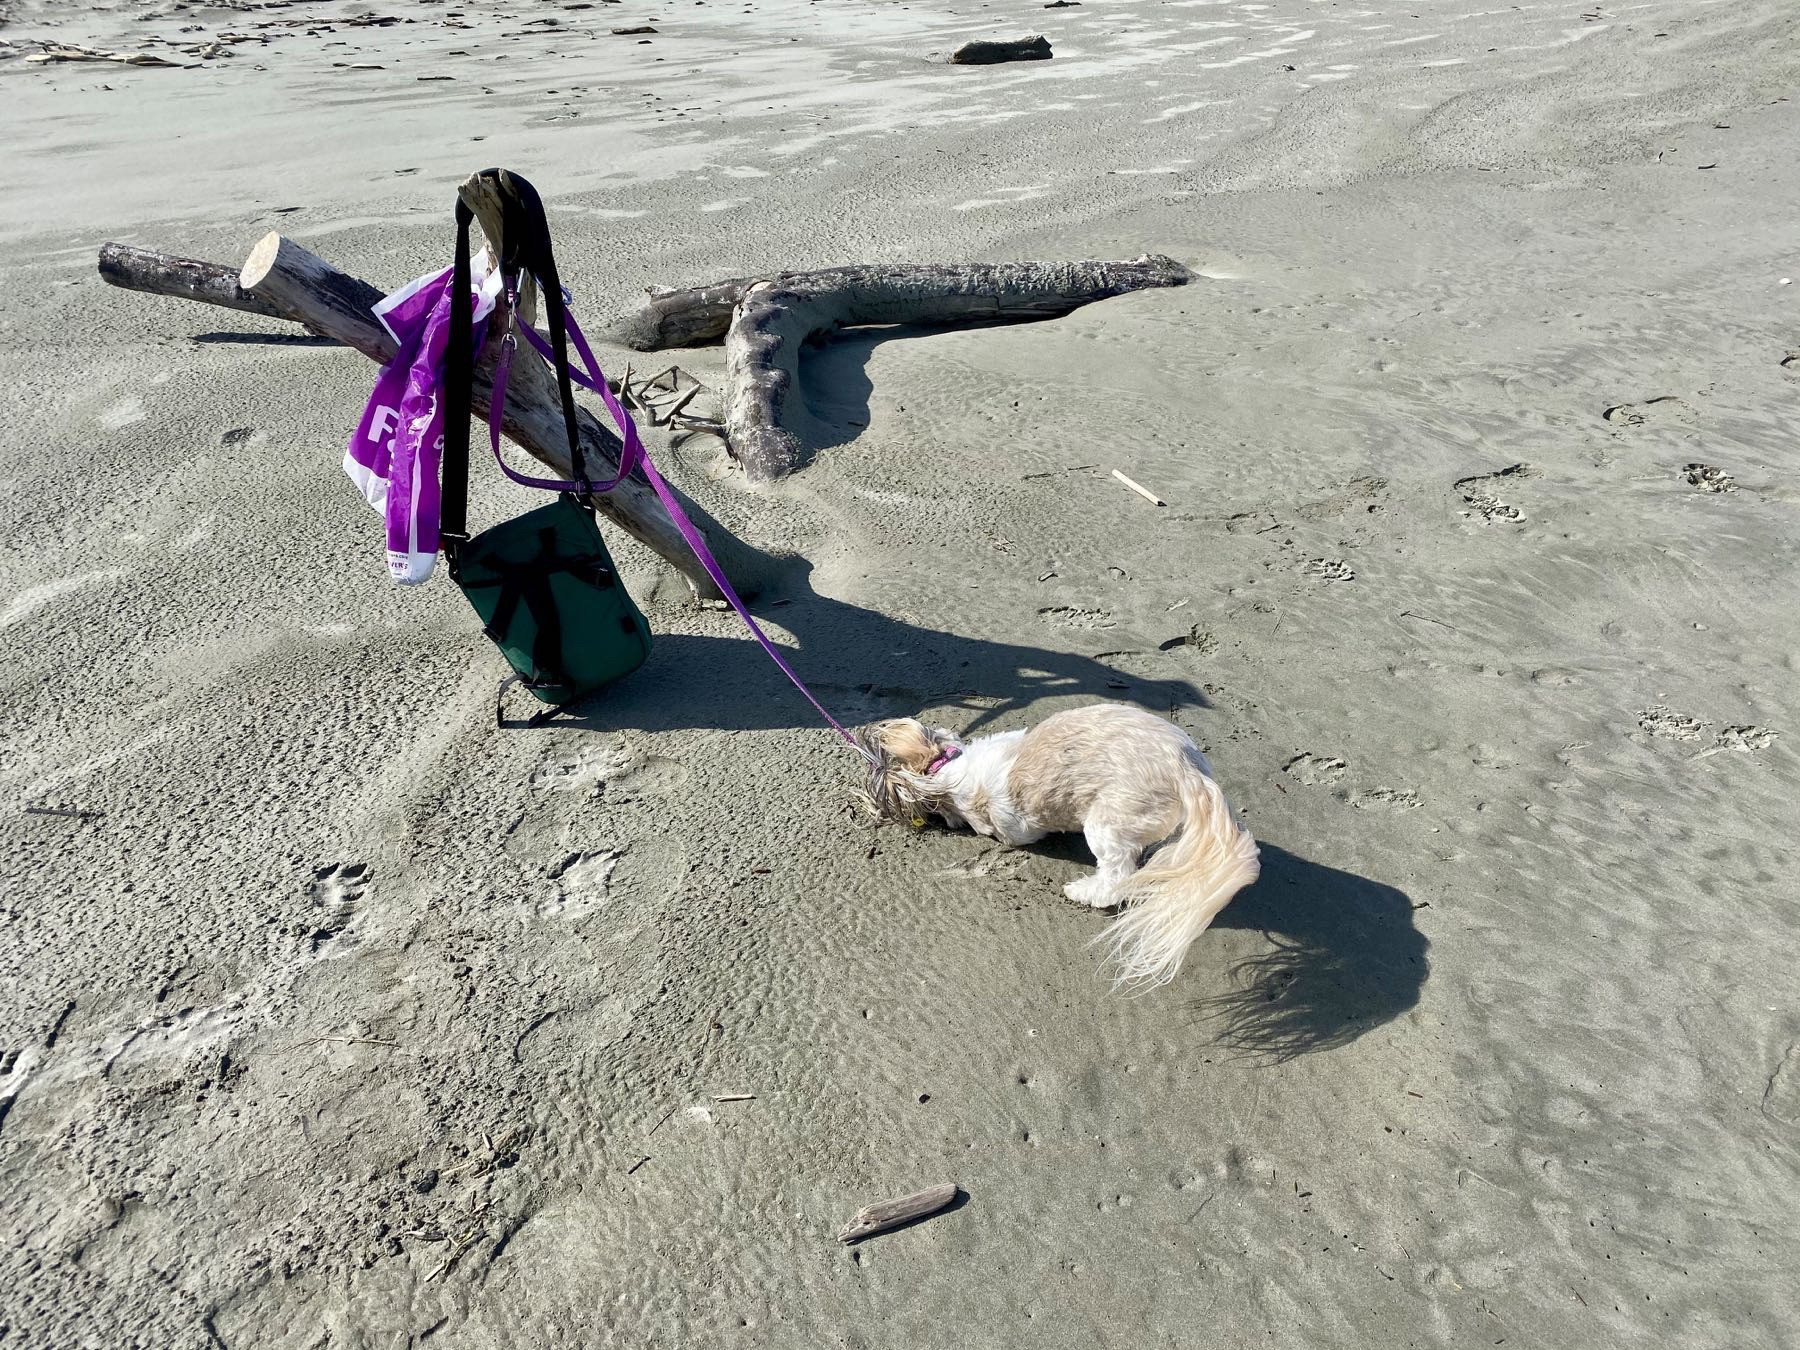 Small dog rolling on the sand.